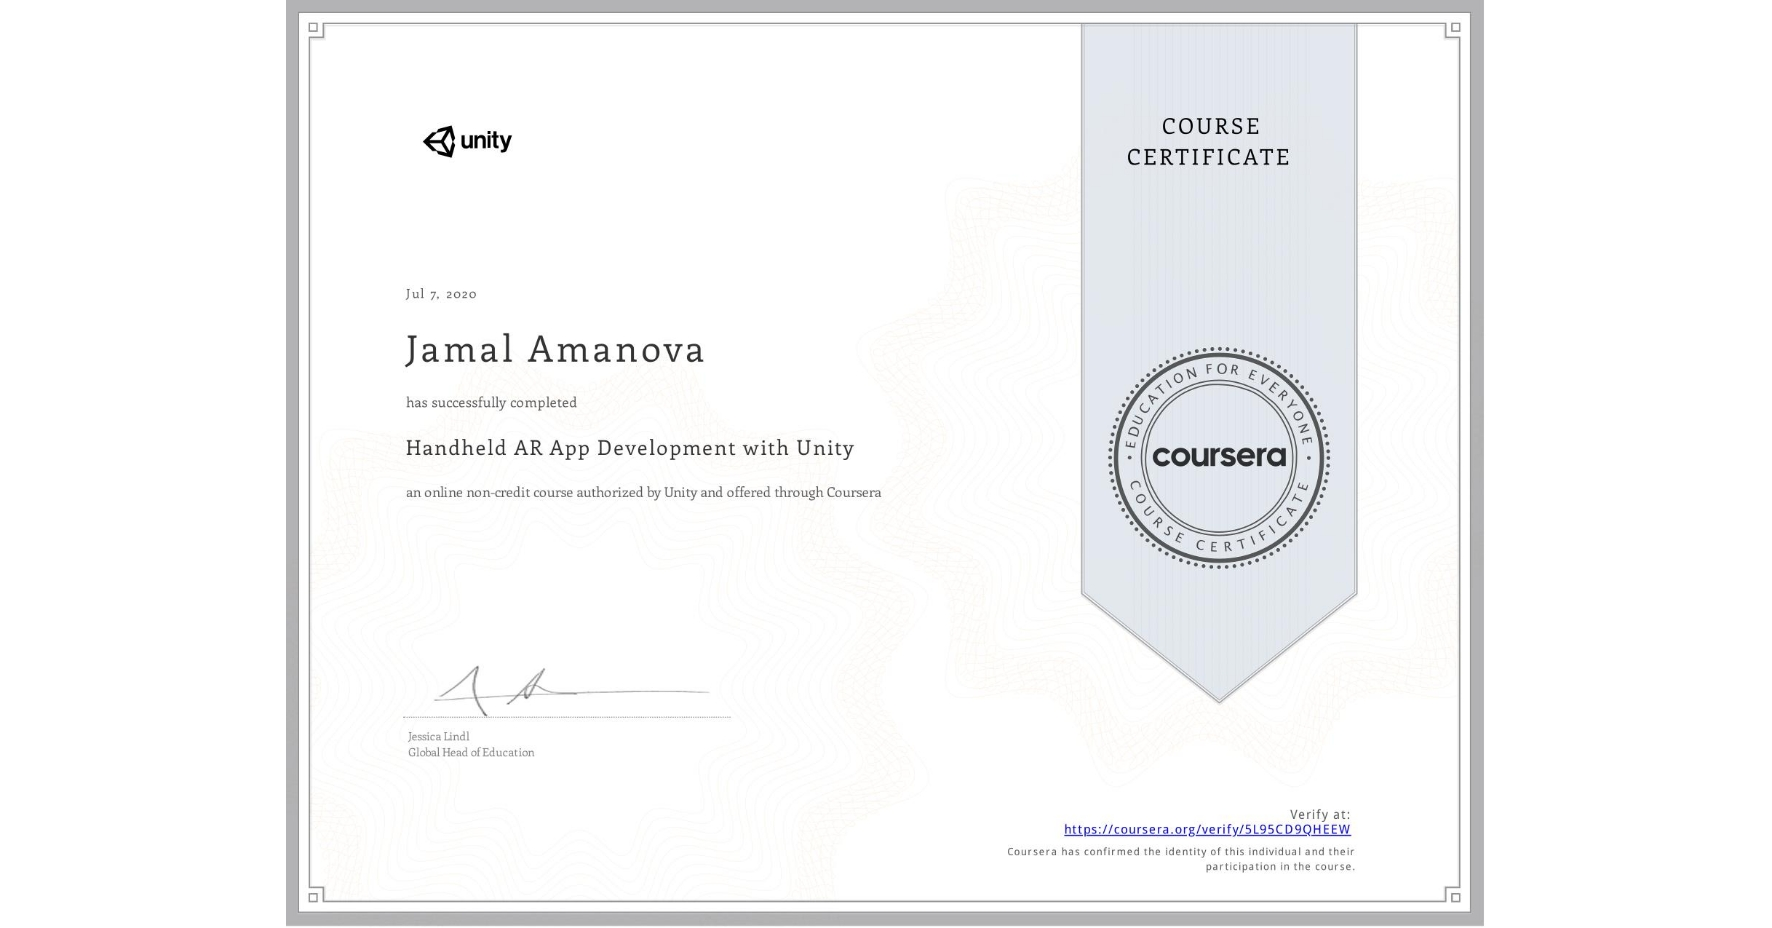 View certificate for Jamal Amanova, Handheld AR App Development with Unity, an online non-credit course authorized by Unity and offered through Coursera